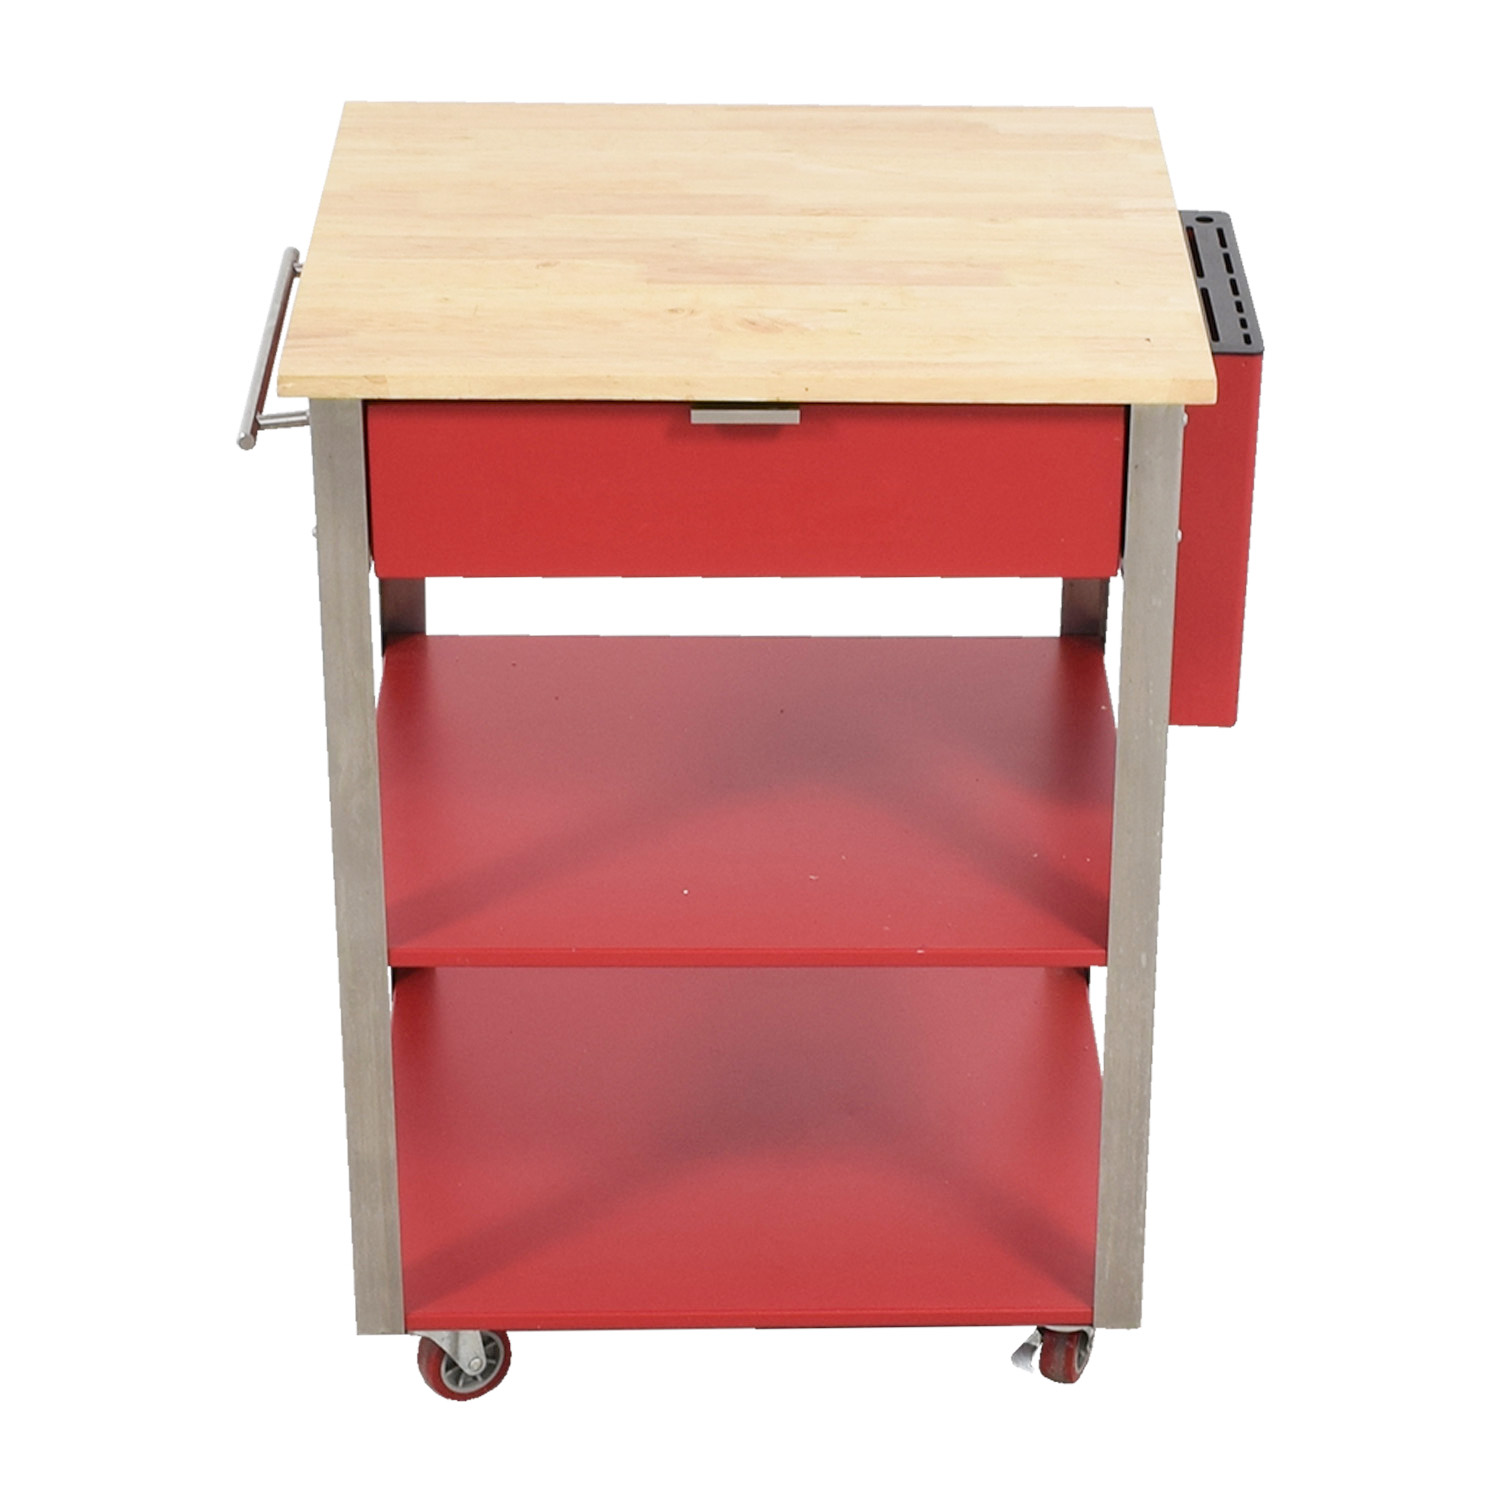 Crossley Crossley Red Metal and Wood Kitchen Island coupon